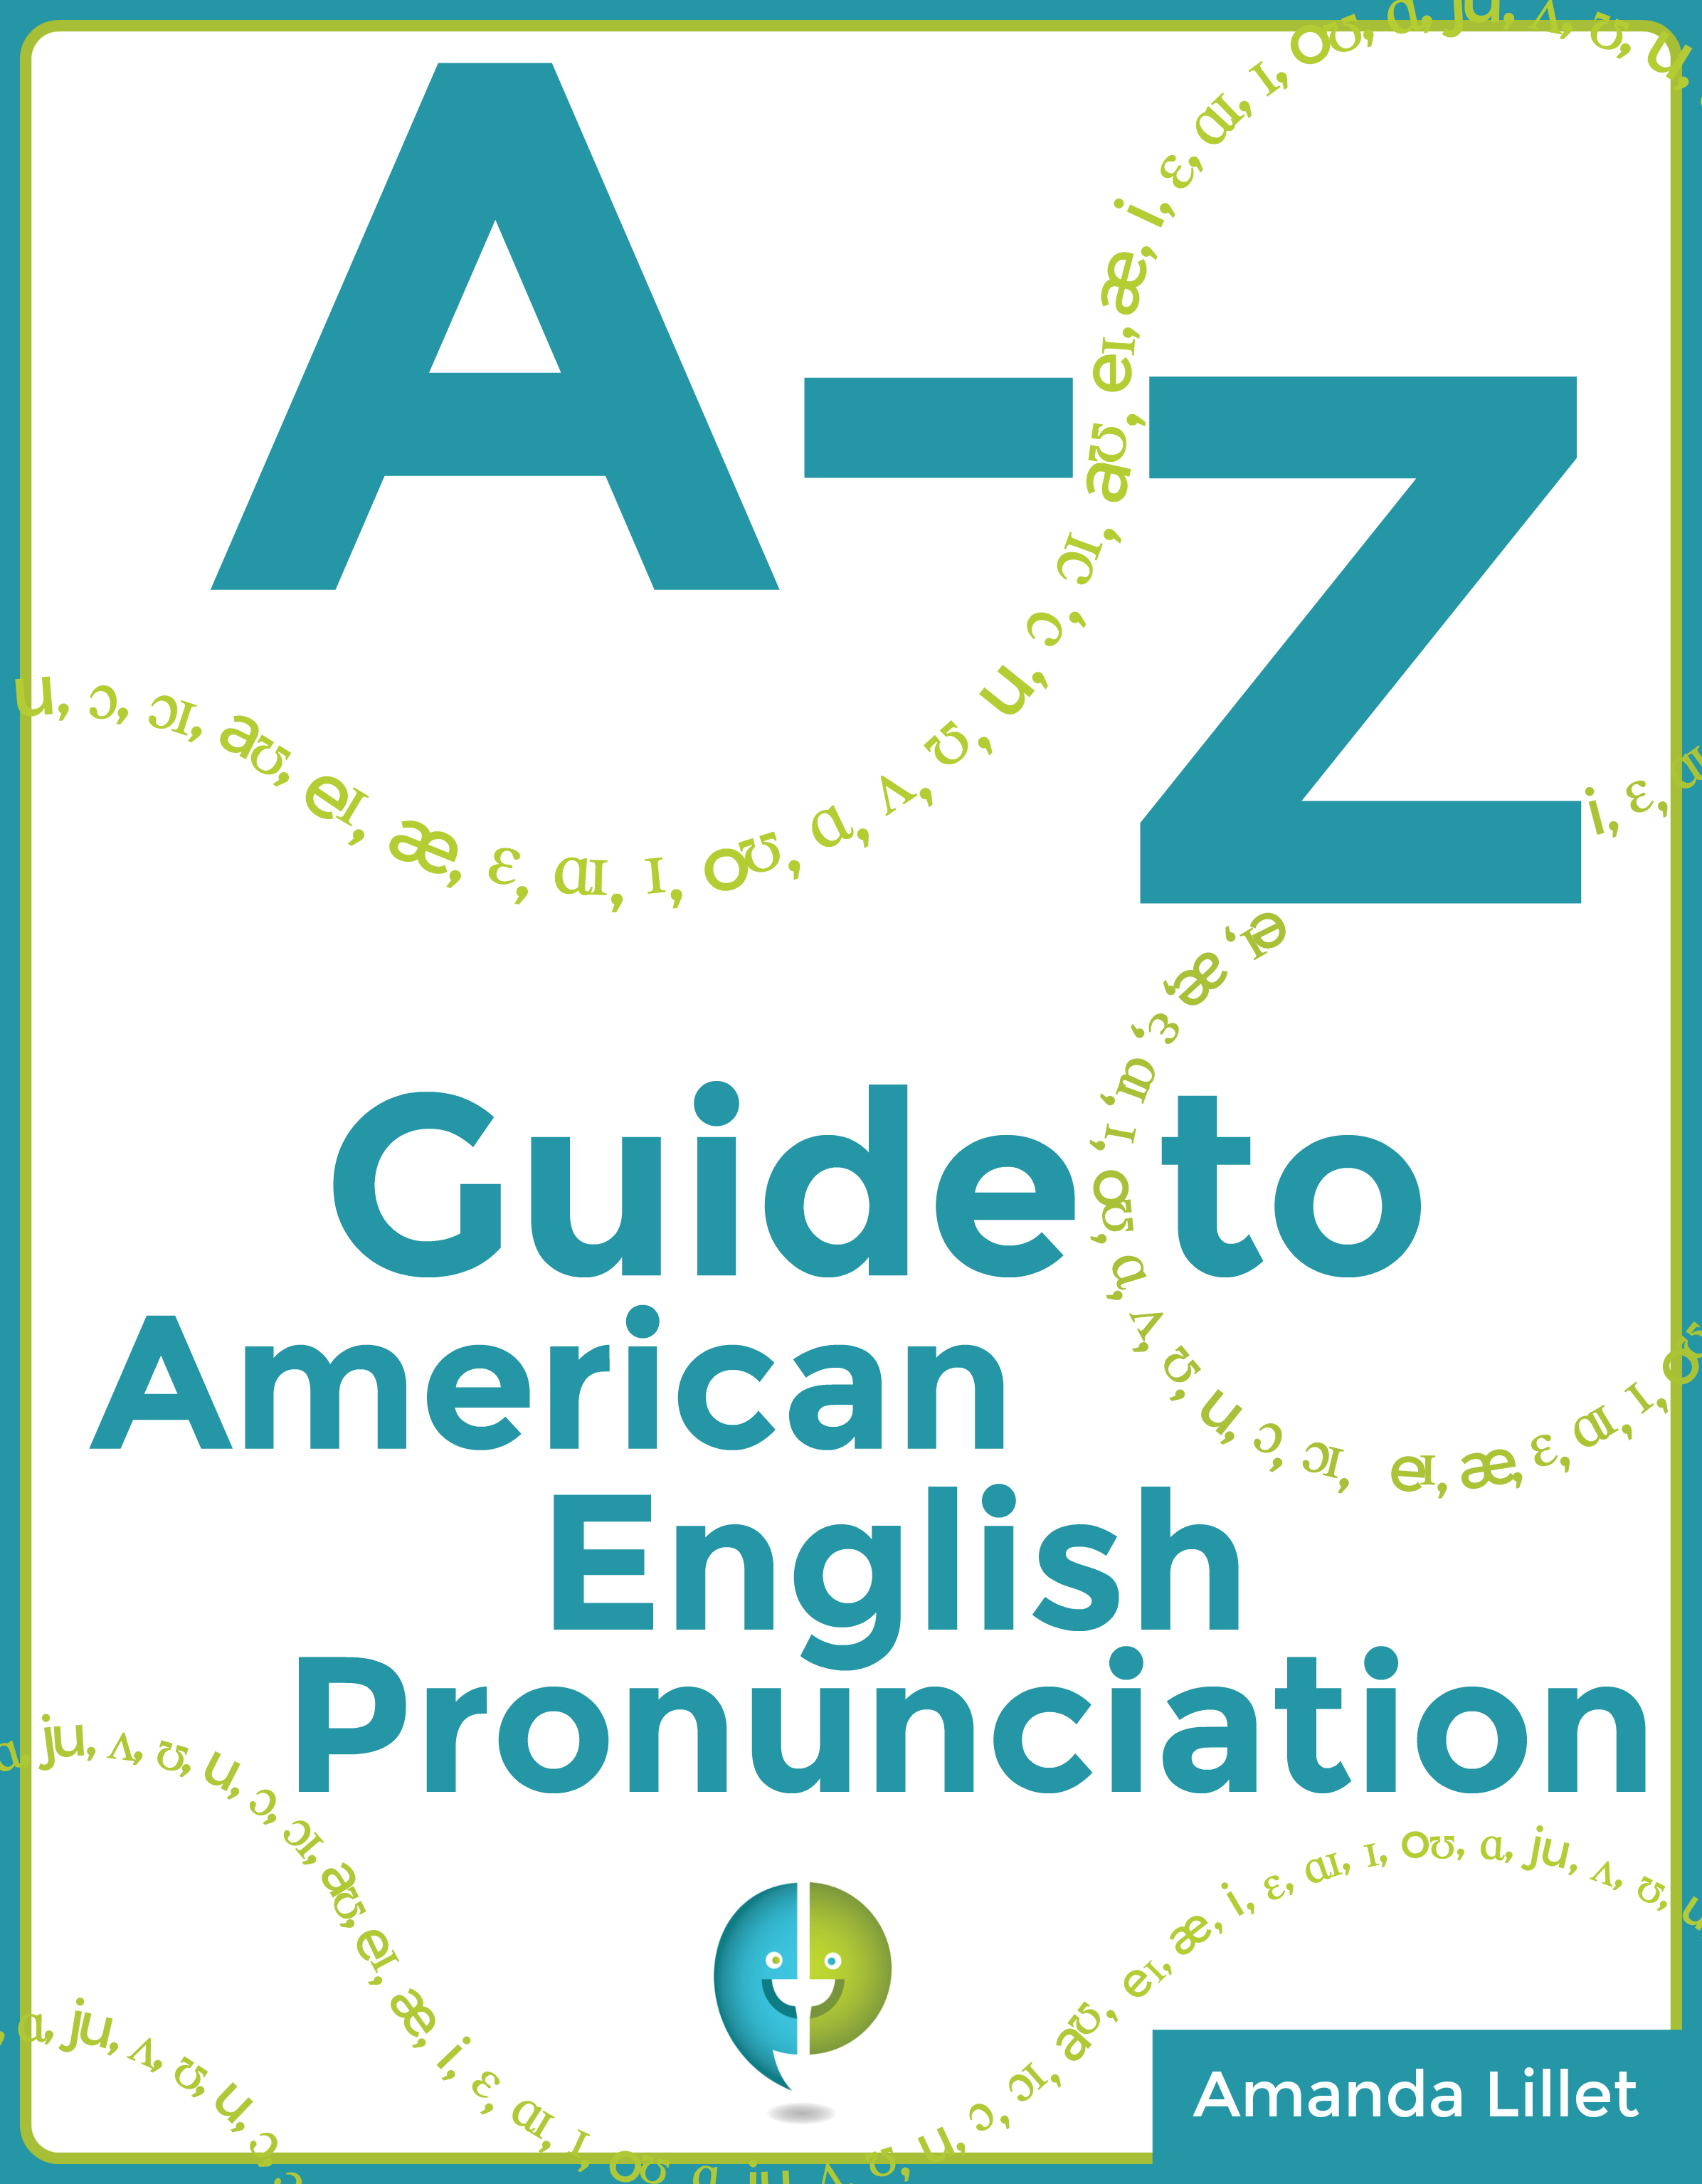 Get your free English Pronunciation ebook now!